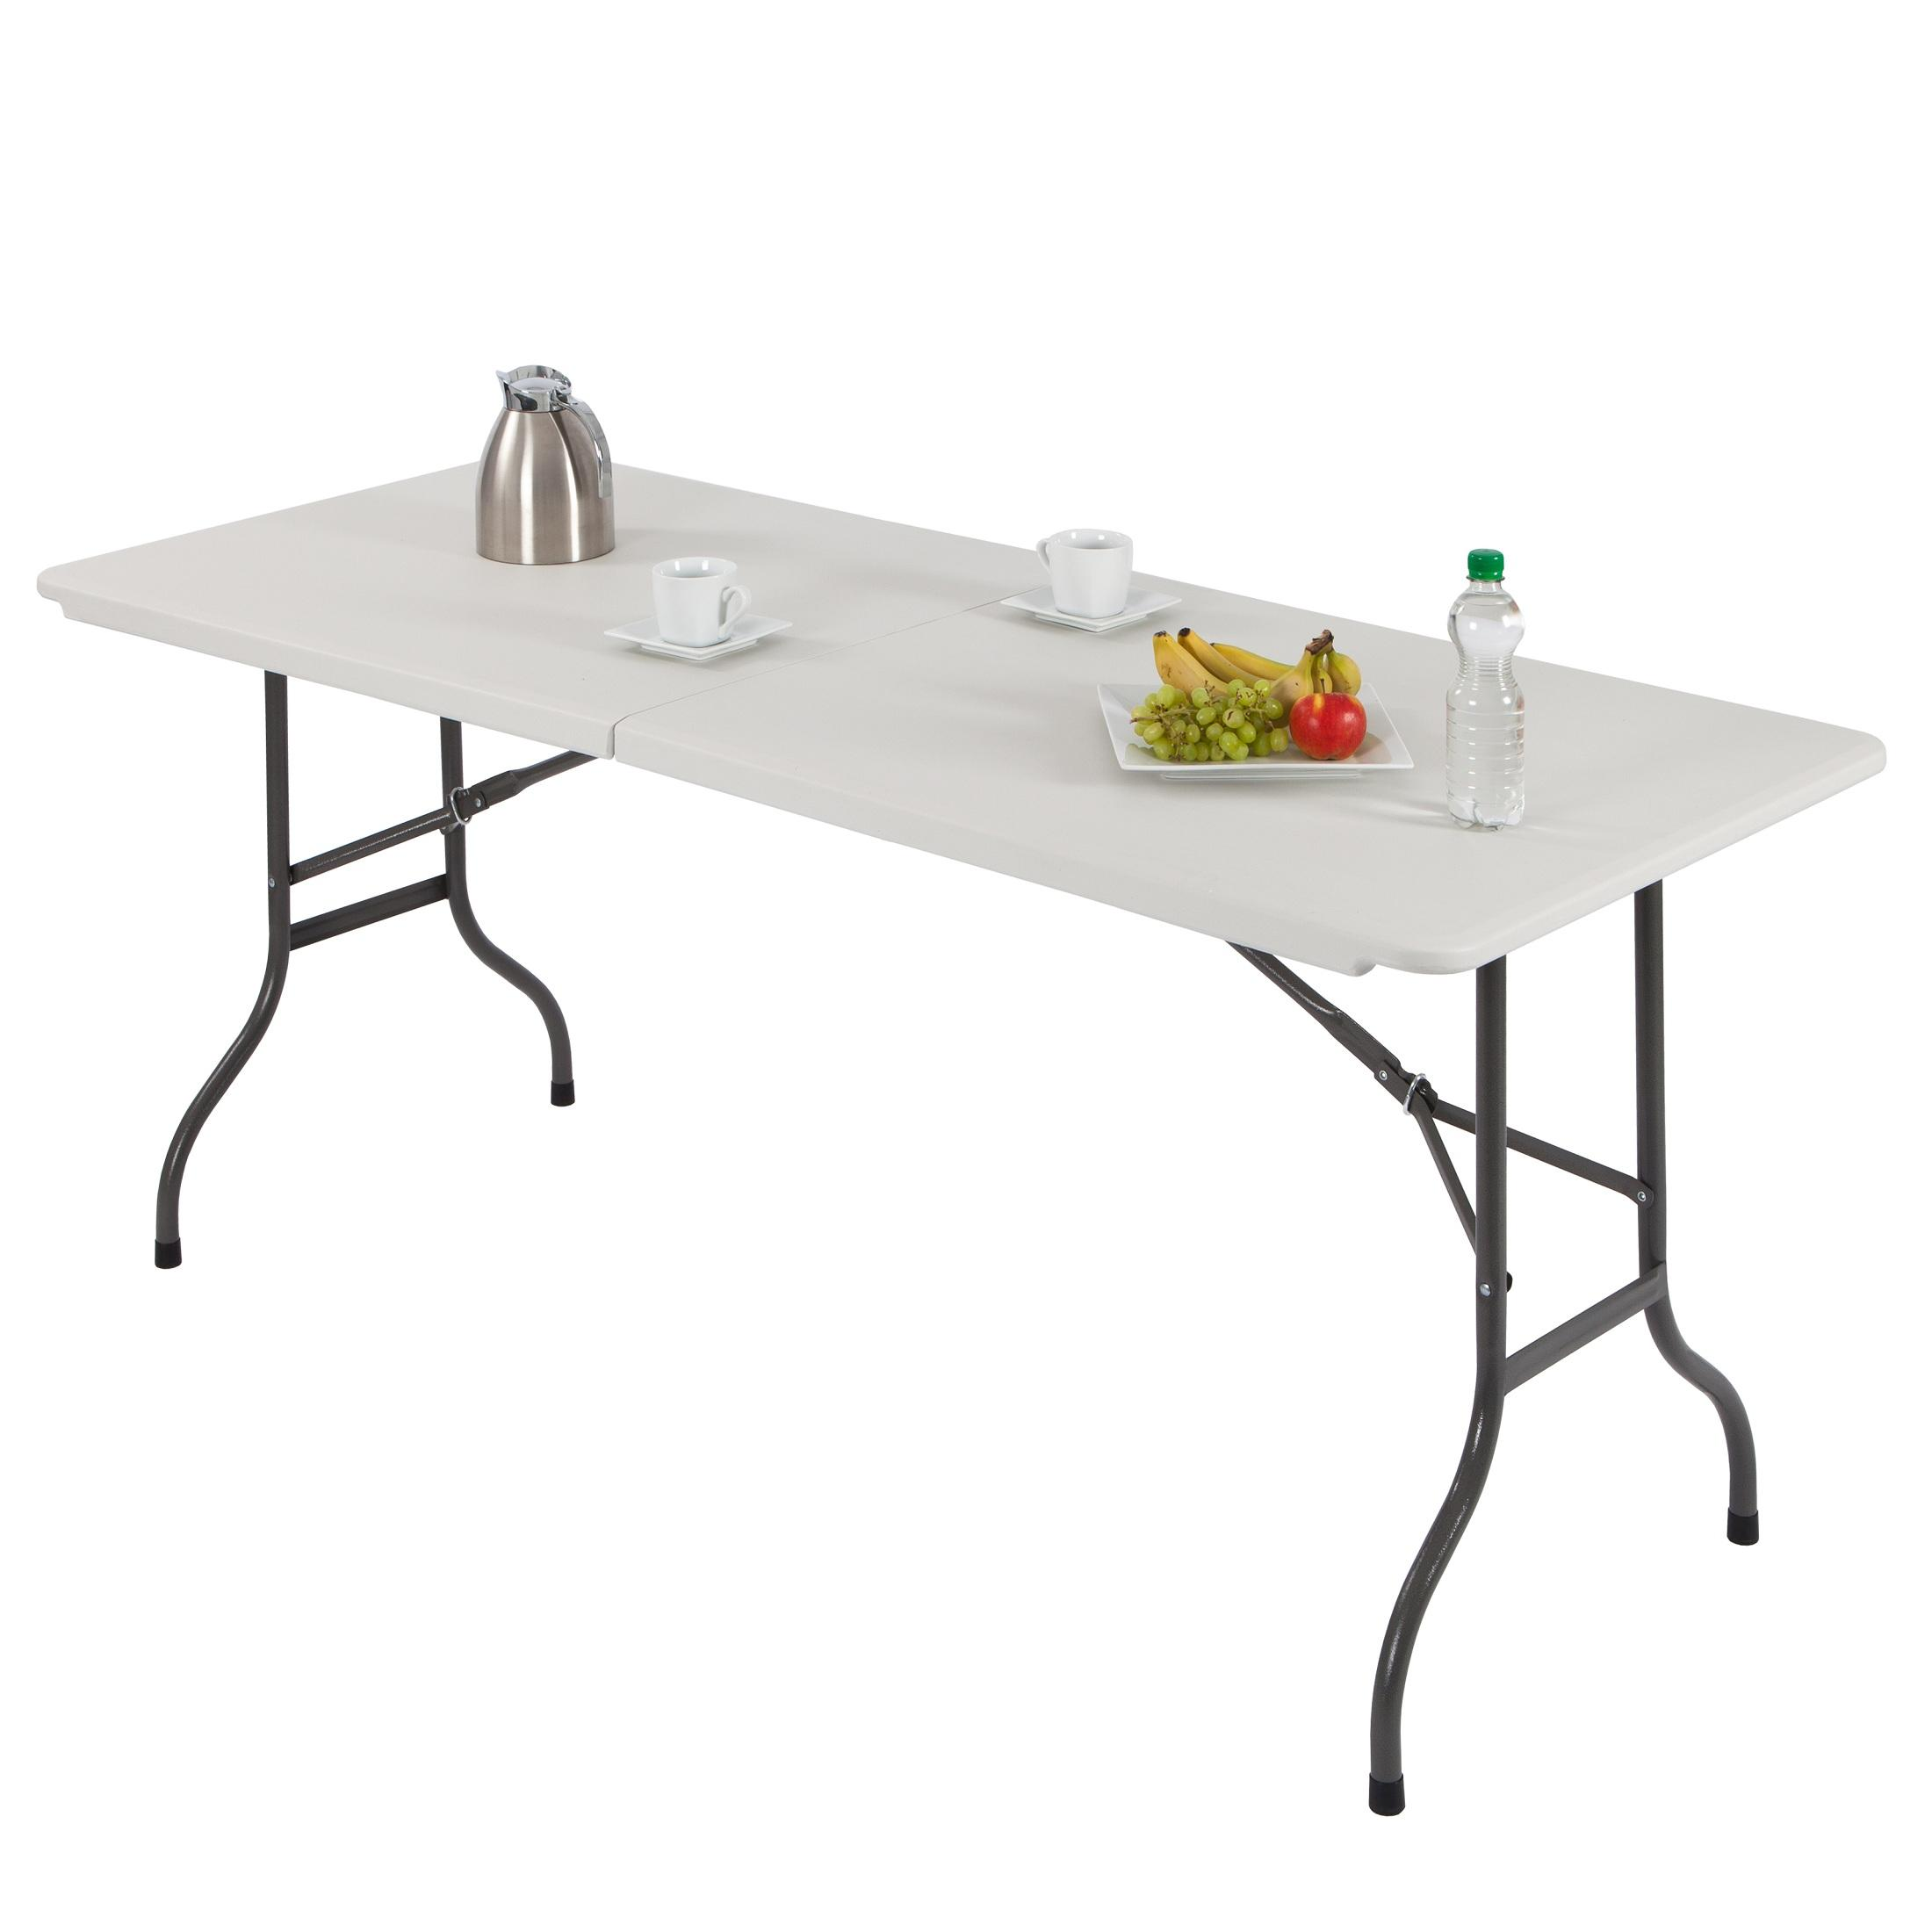 Ultranatura table pliante multiusage en plastique gamme for Table cuisine pliante pas cher